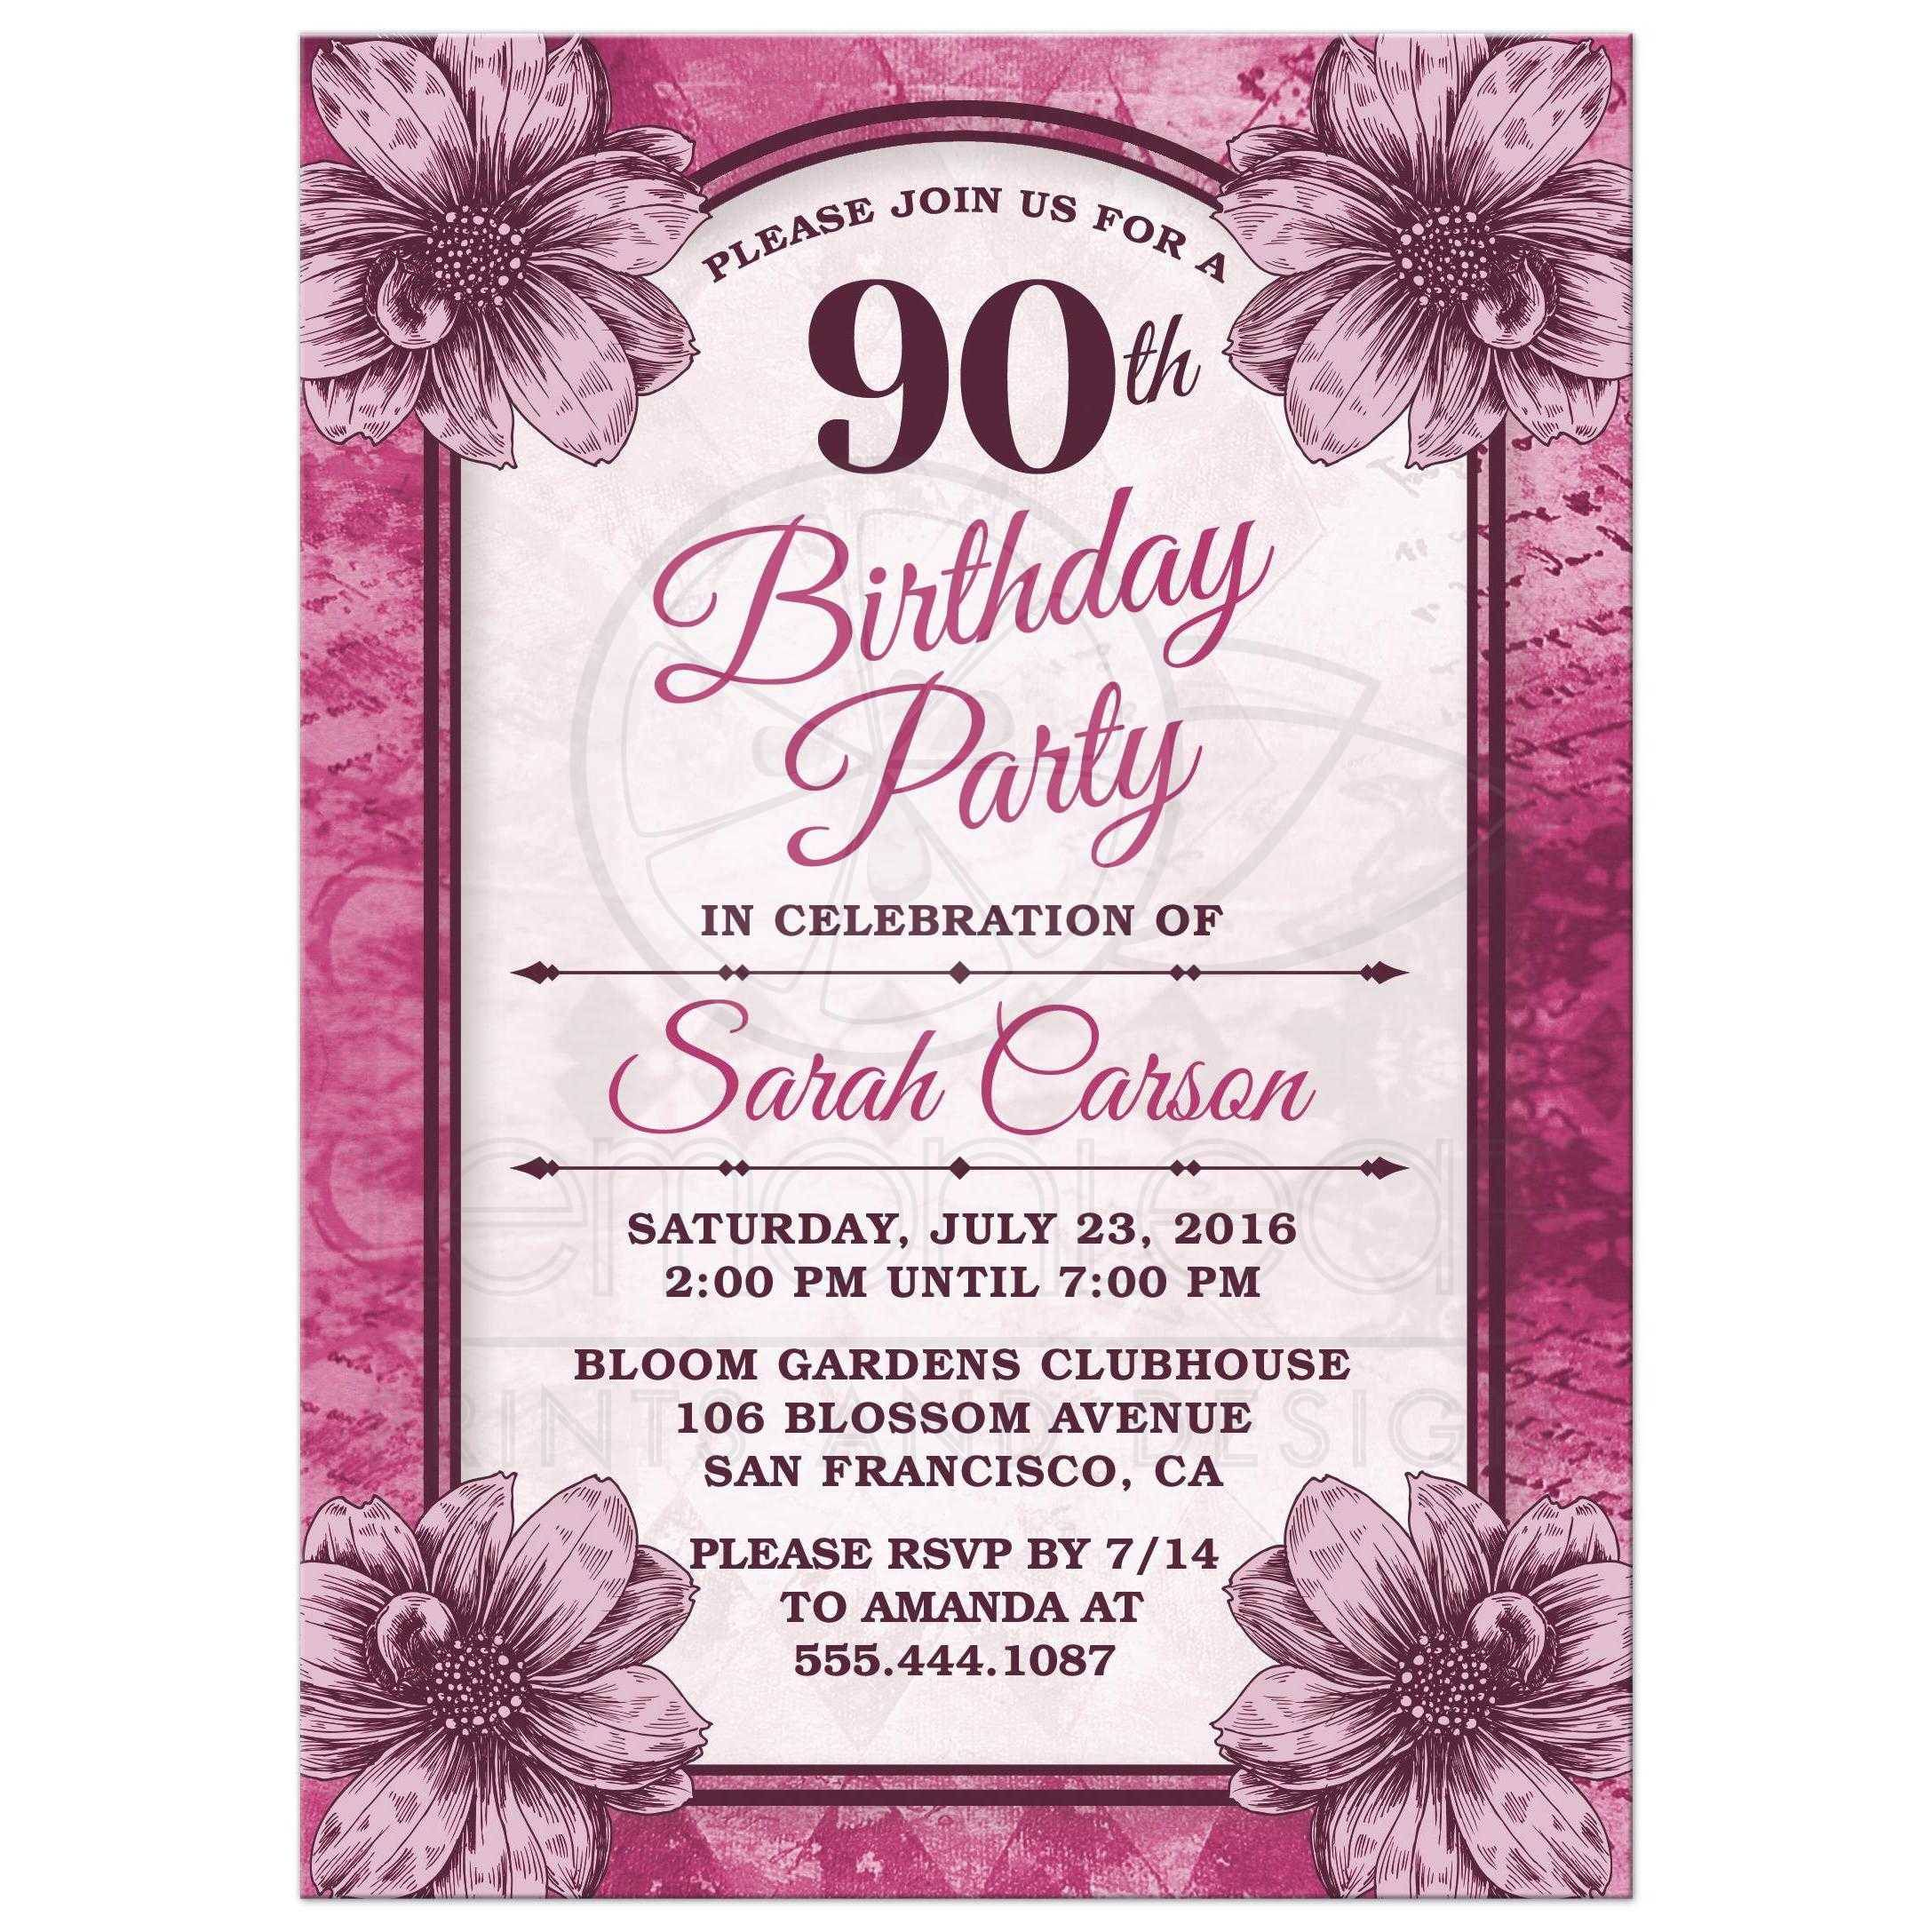 90th Birthday Party Invitations Templates Free  Free Party Invitation Template Word